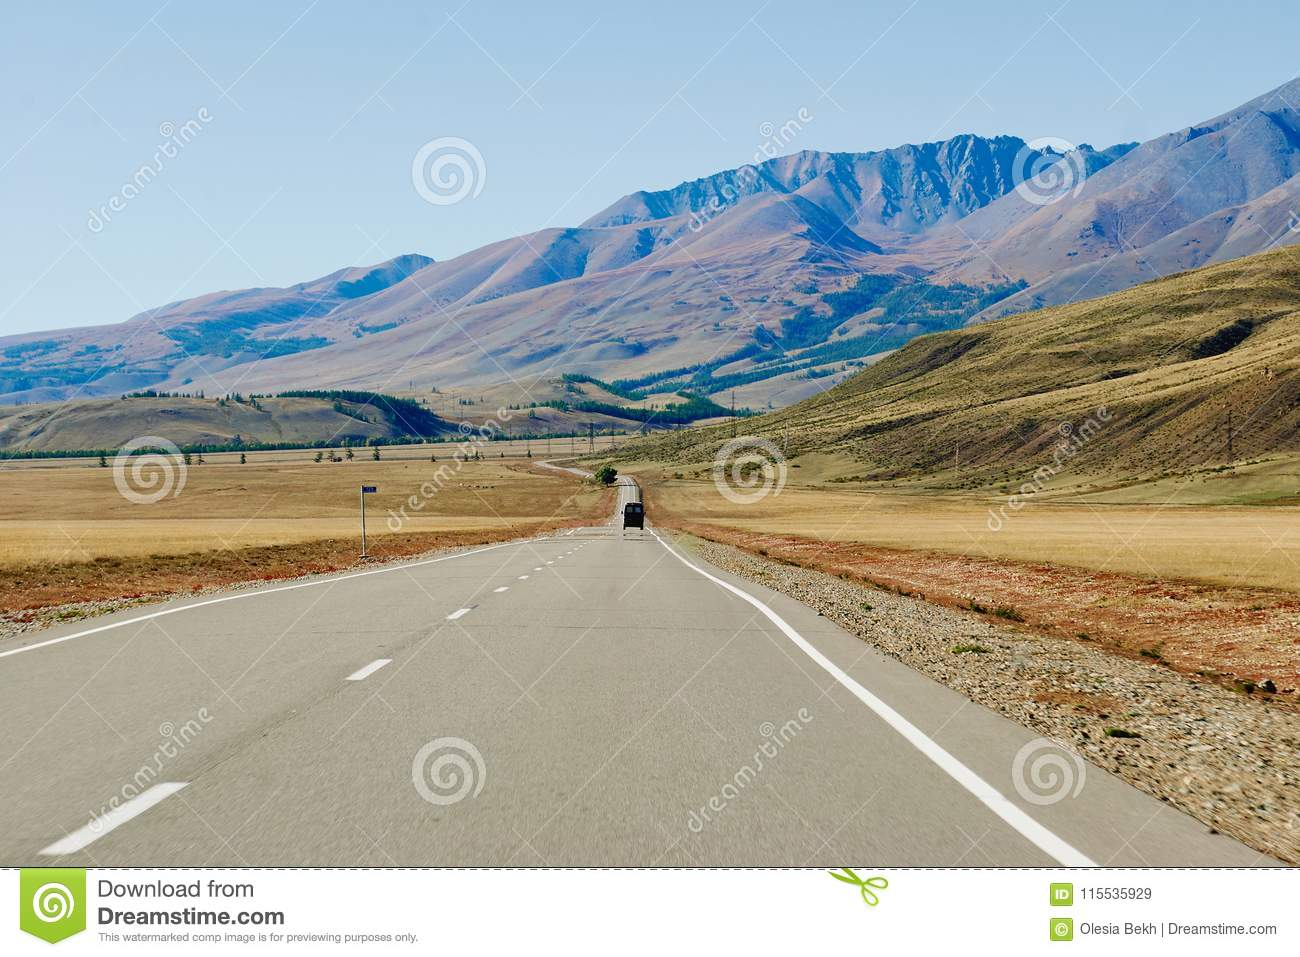 Car on the road in the Altai Mountains near the border of Russia and Mongolia